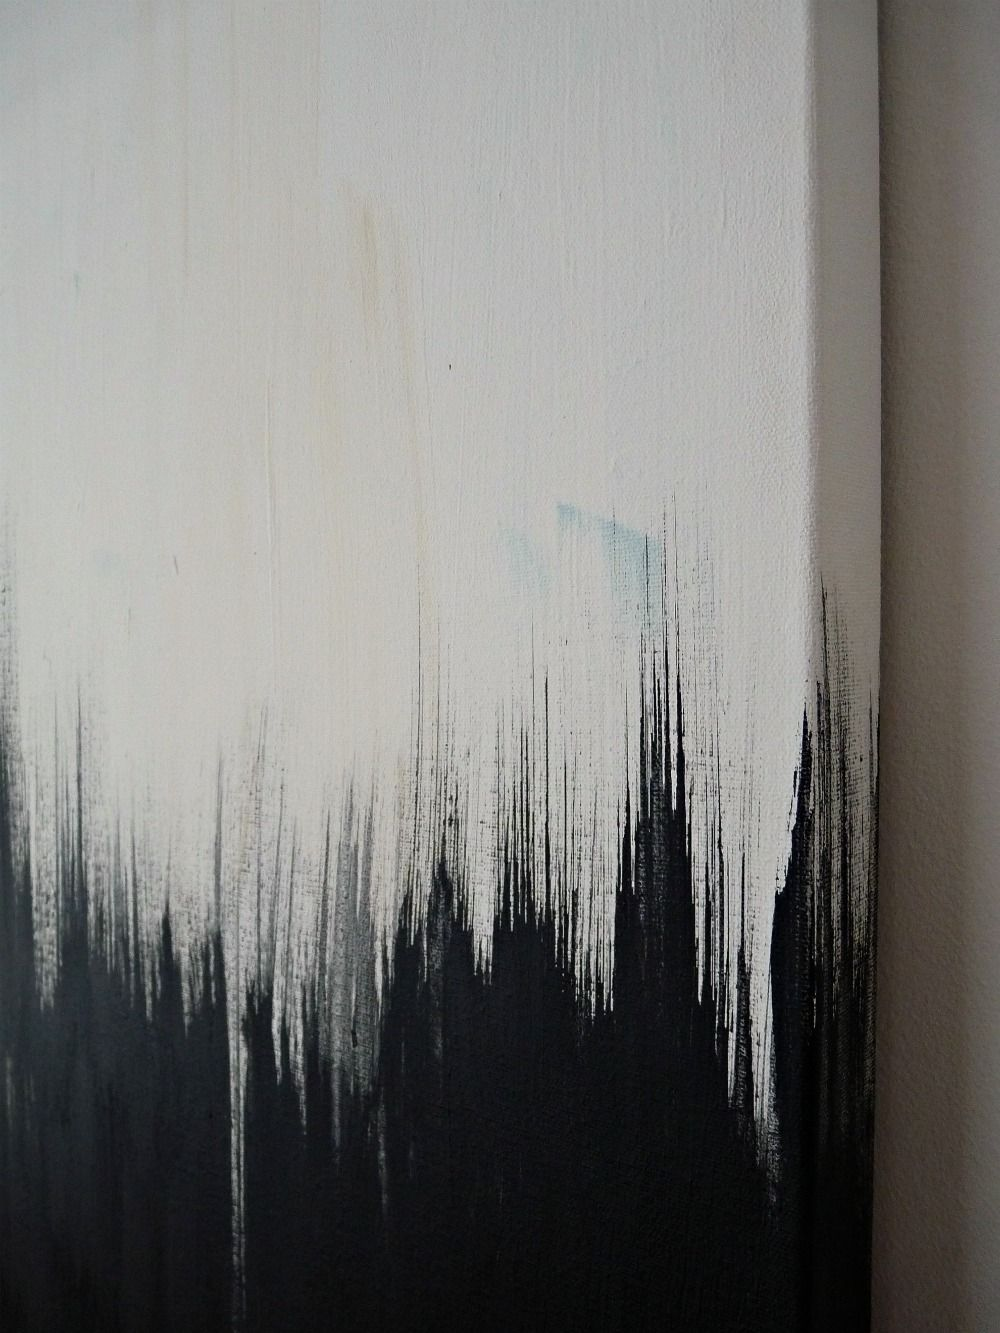 Simple But Striking, Black + White DIY Abstract Painting | Diy art ...